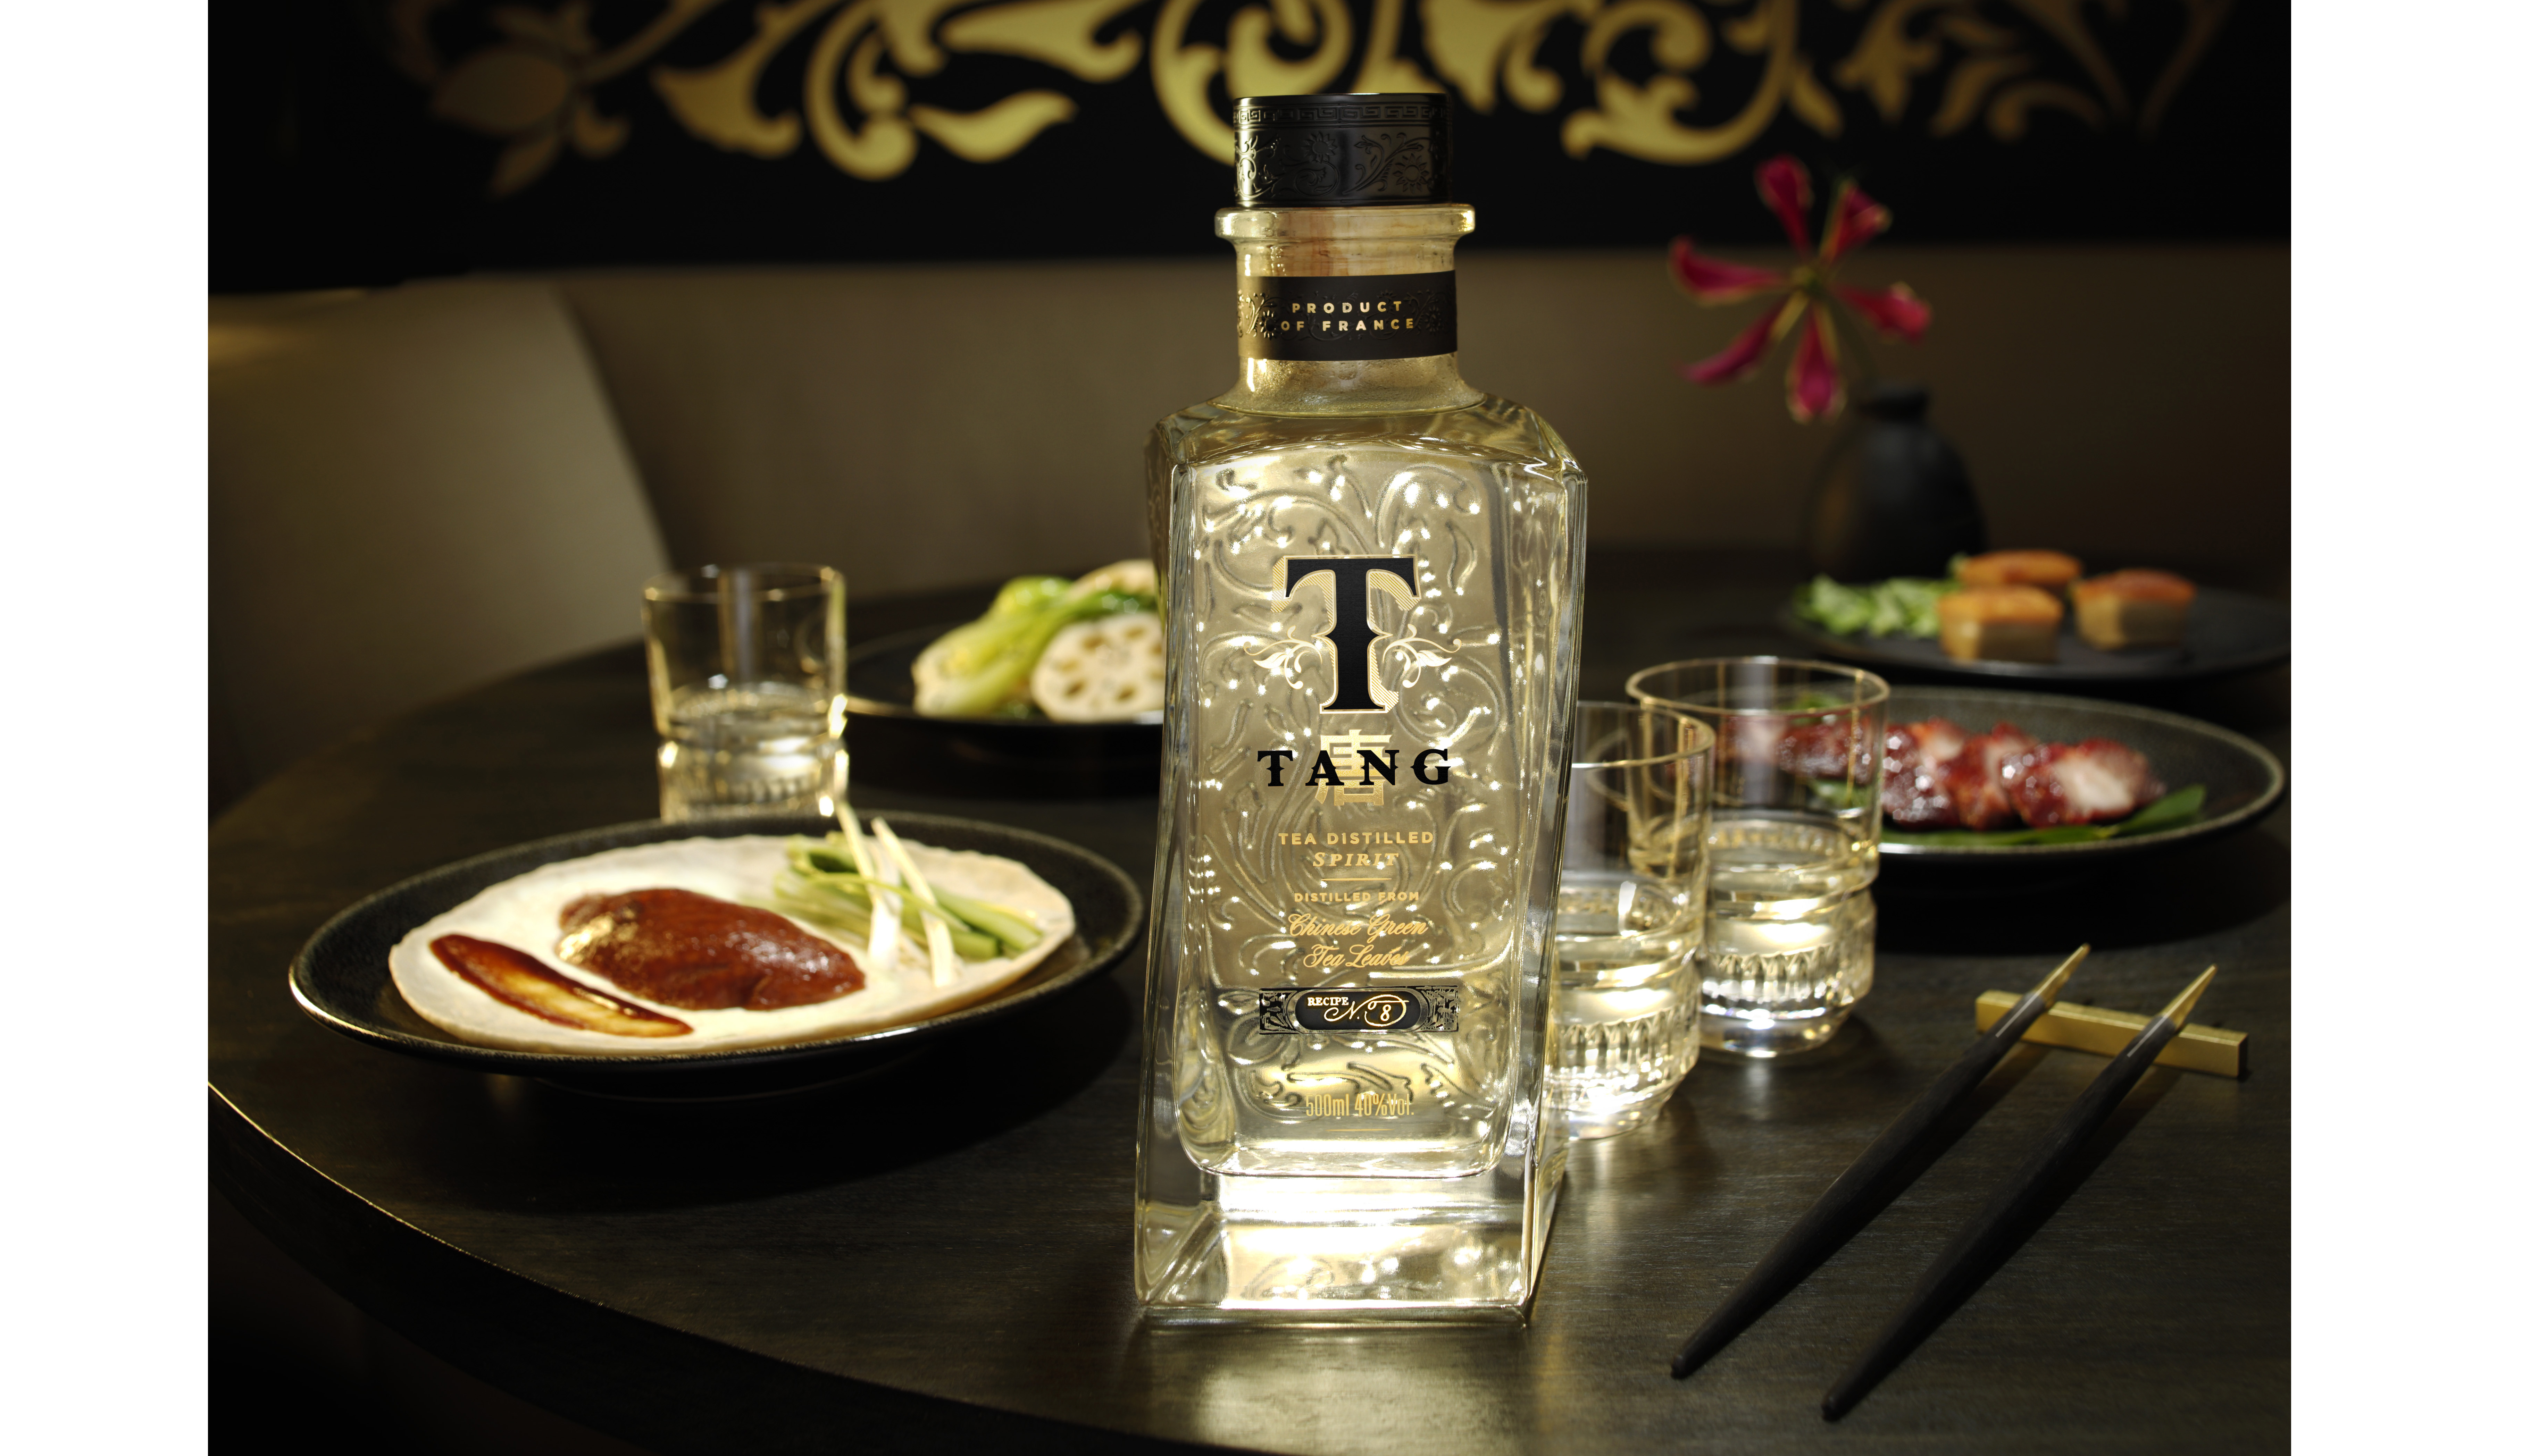 Bacardi is tackling China's alcoholic beverage market with a new spirit distilled from green tea leaves.